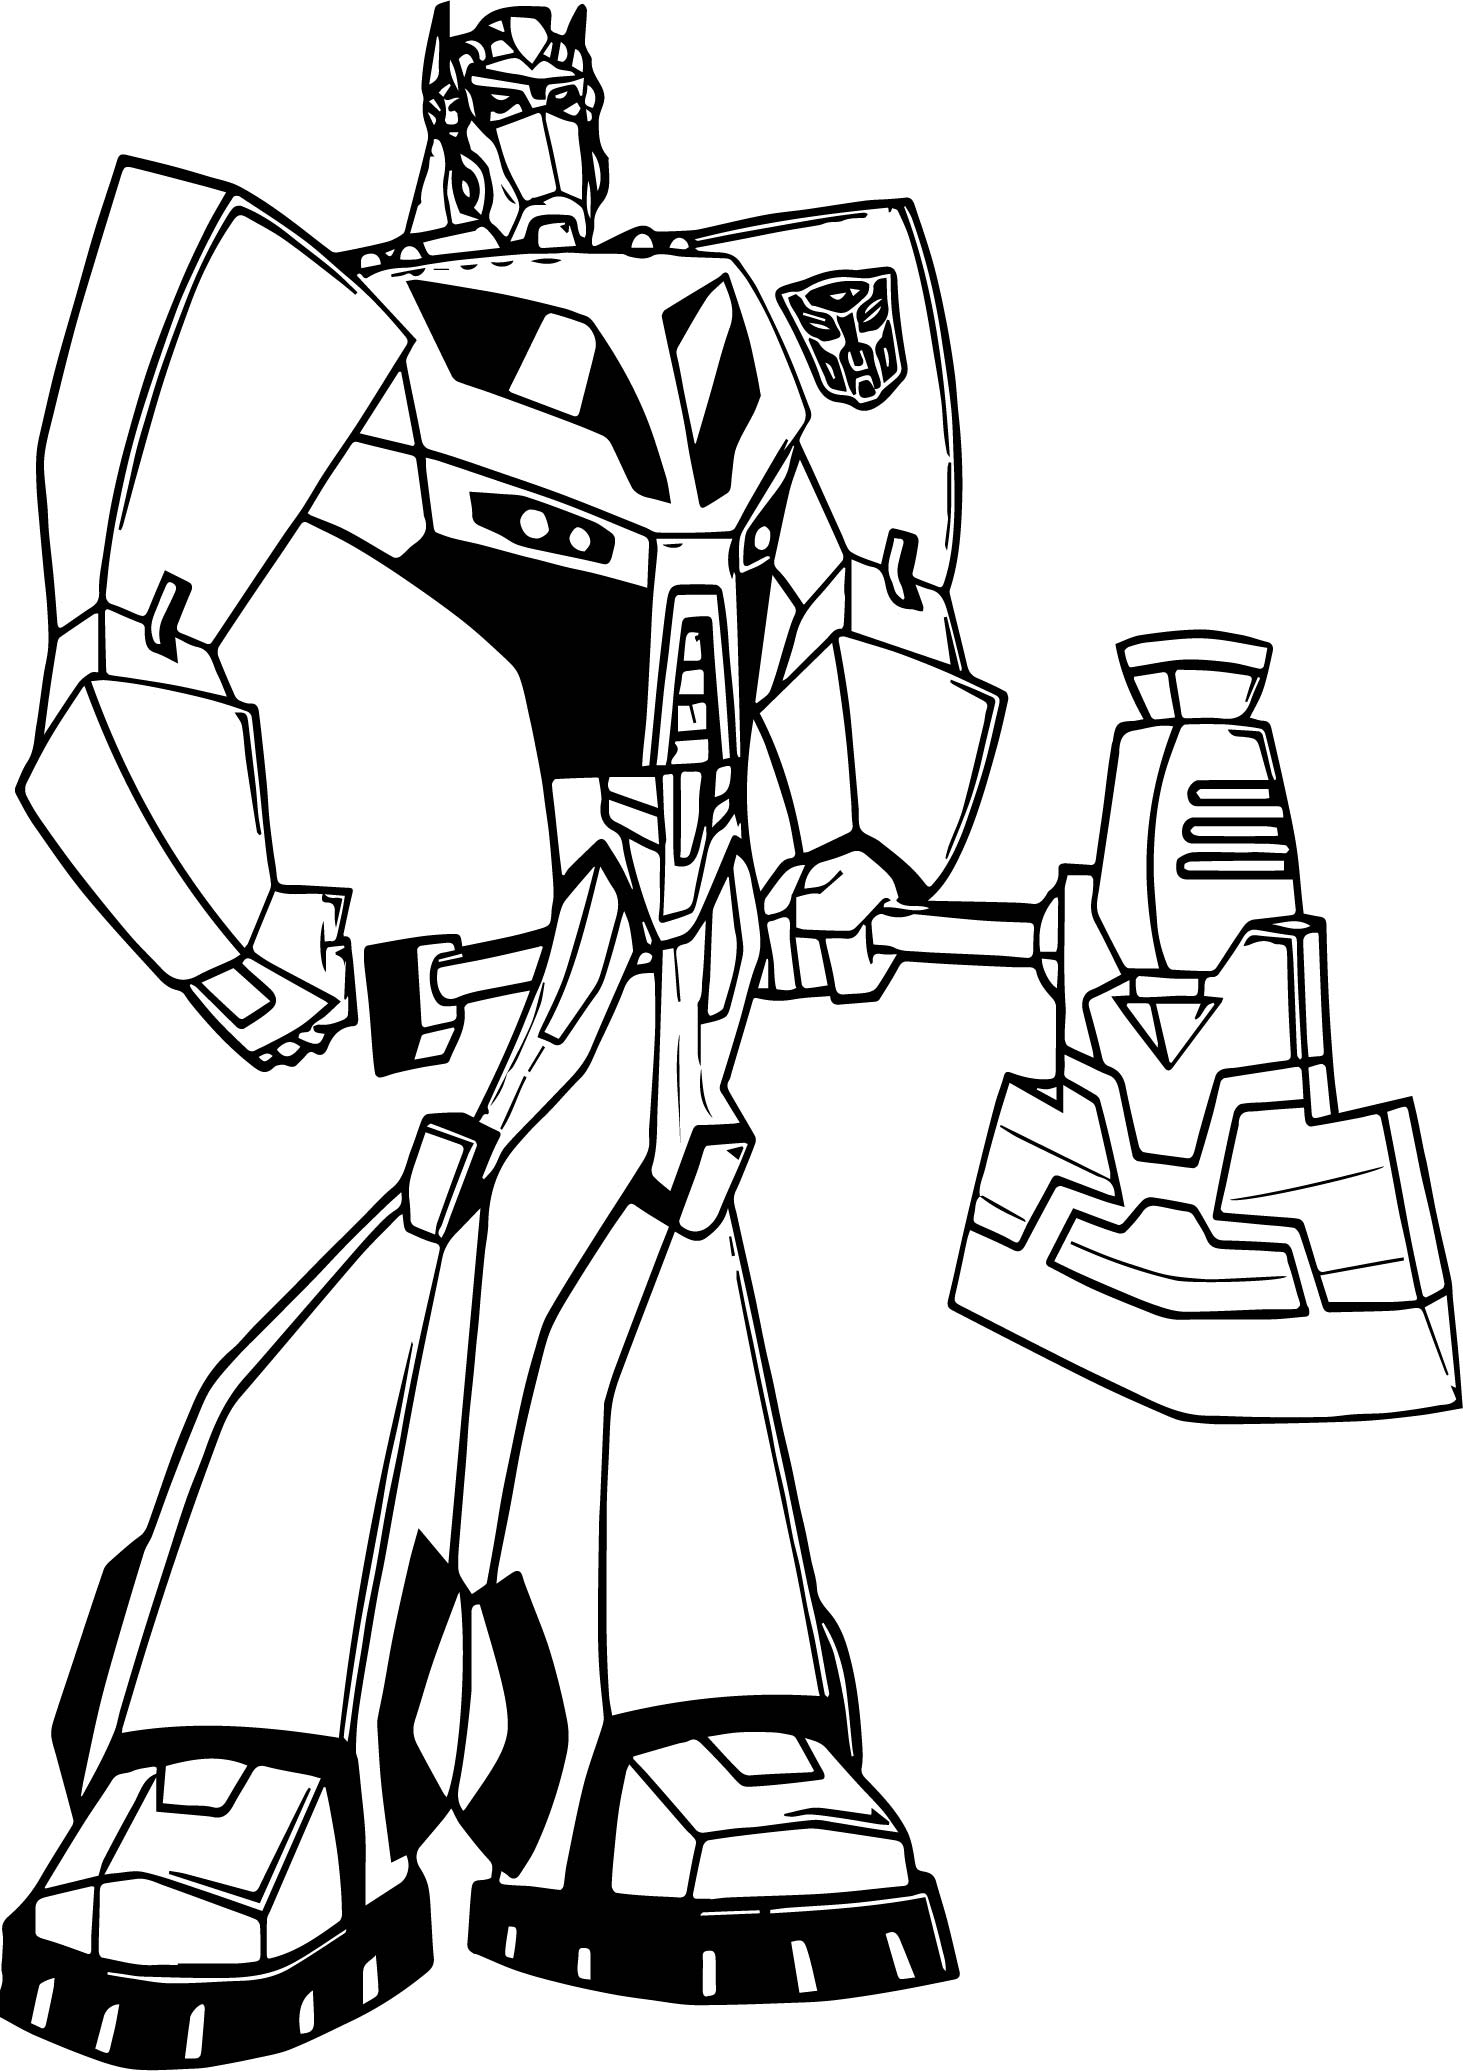 Transformers blade coloring page for Transformers animated coloring pages